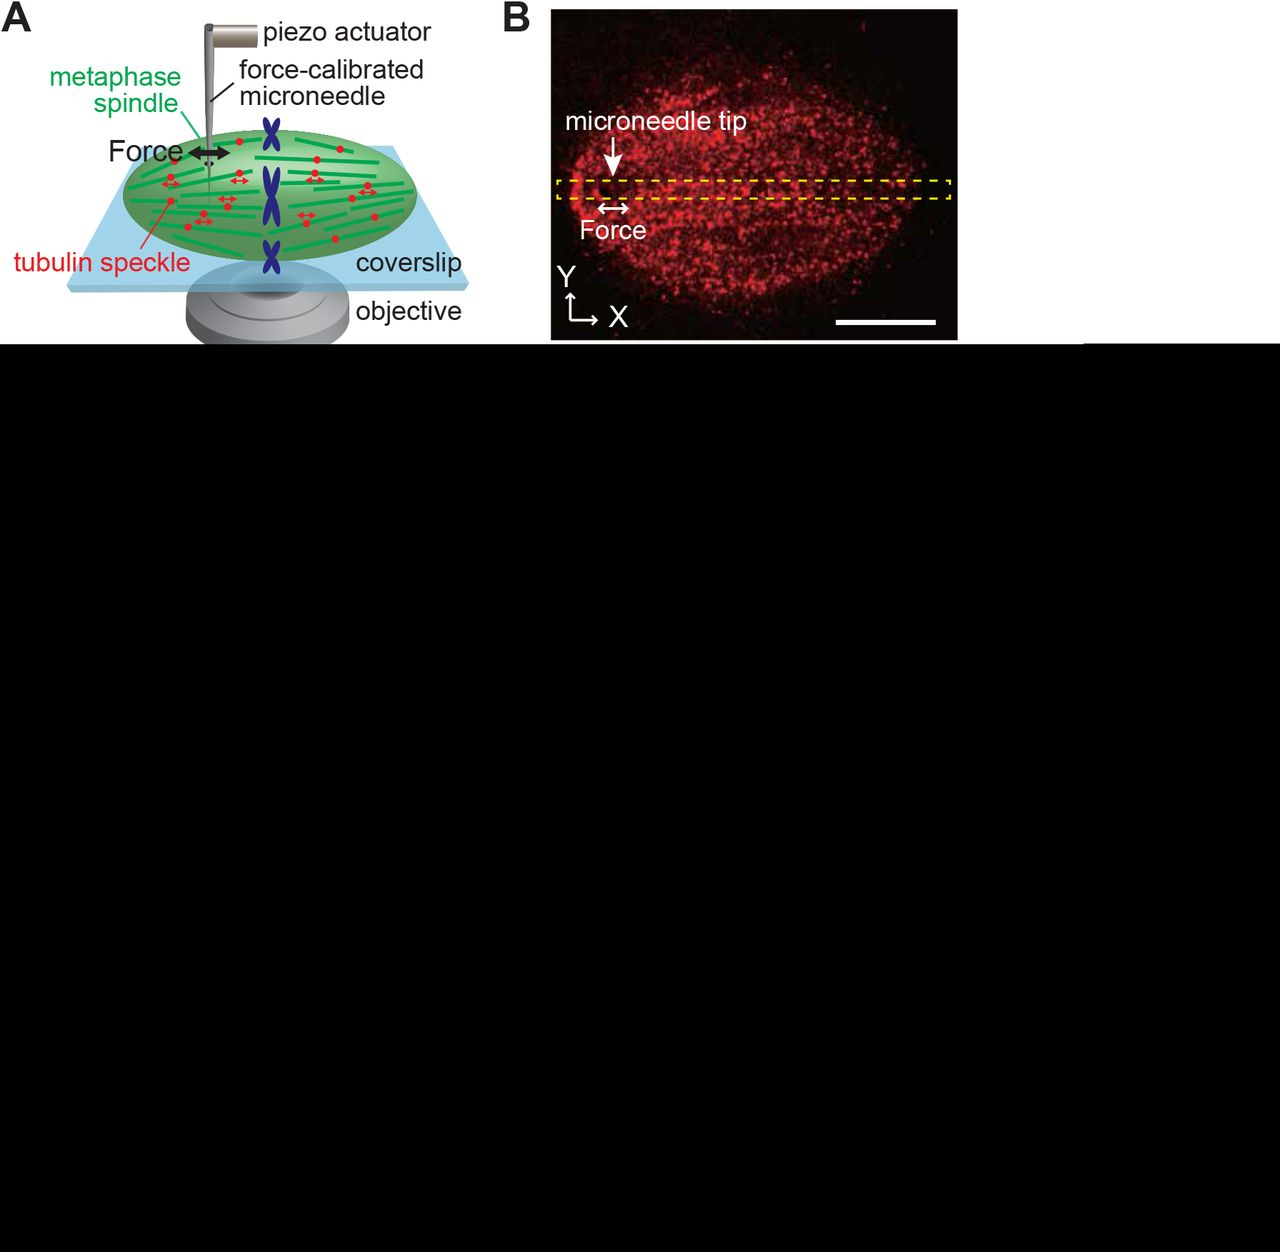 Mechanical heterogeneity and roles of parallel microtubule